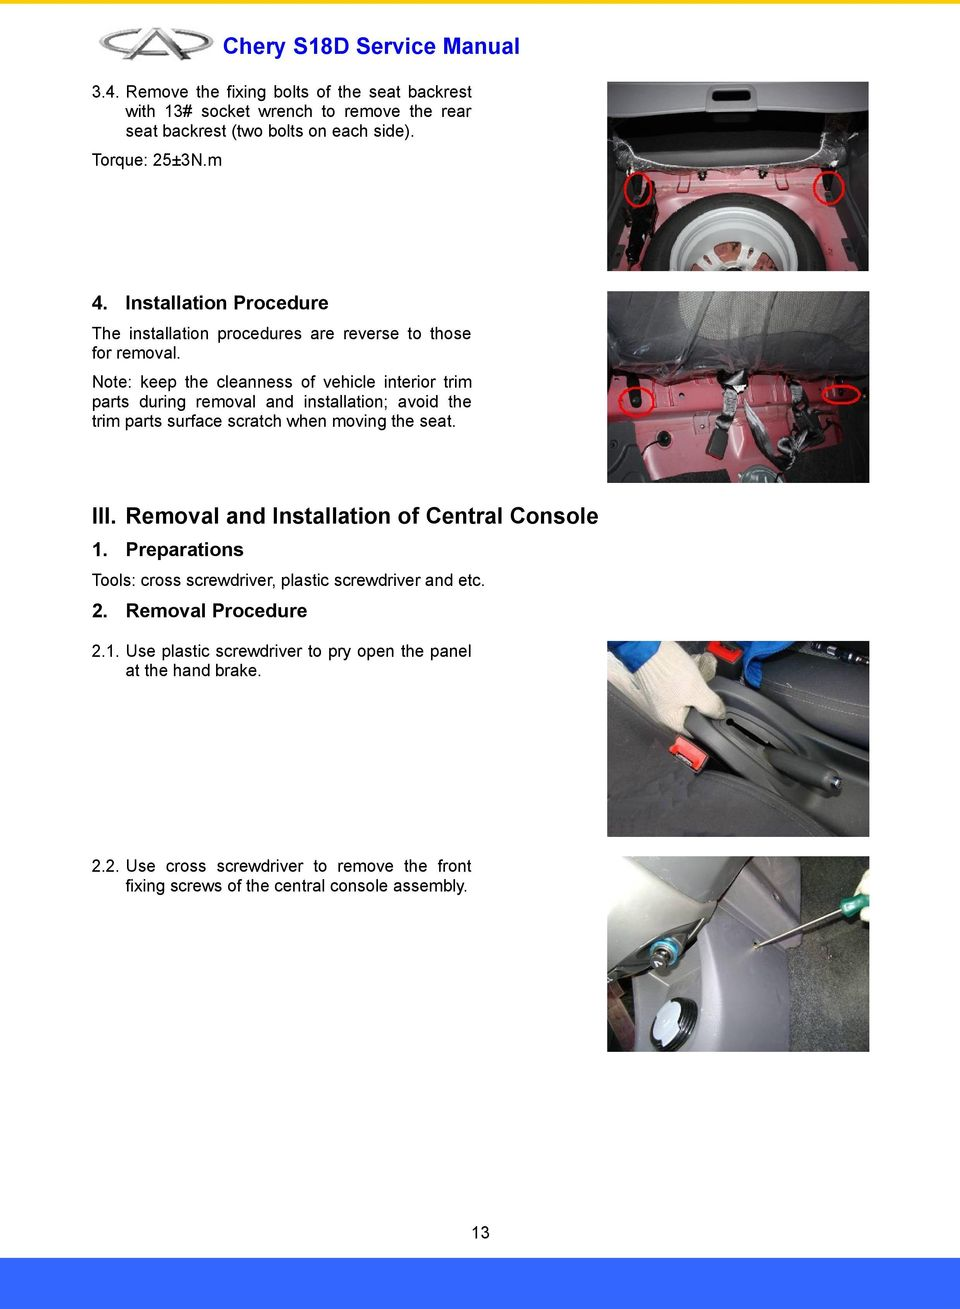 Note: keep the cleanness of vehicle interior trim parts during removal and installation; avoid the trim parts surface scratch when moving the seat. III.